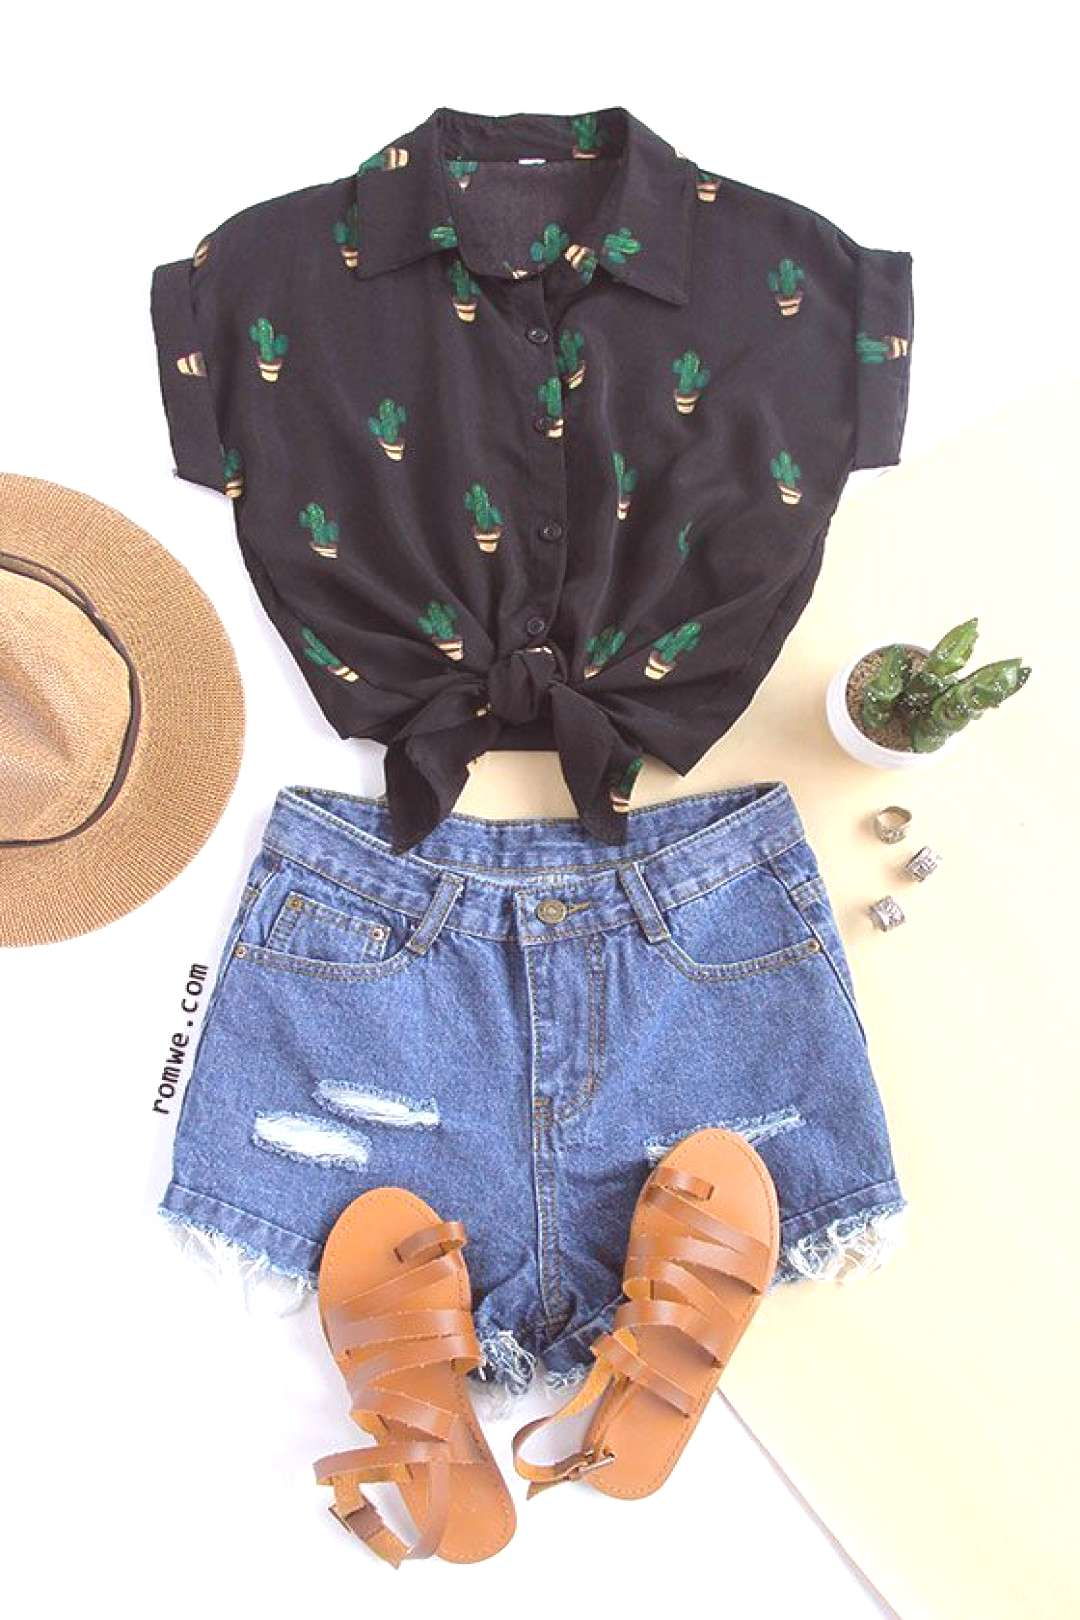 2017 Summer Vacation Ouftit Ideas That Youll Actually Want To Wear » Celebrity Fashion, Outfit Tr